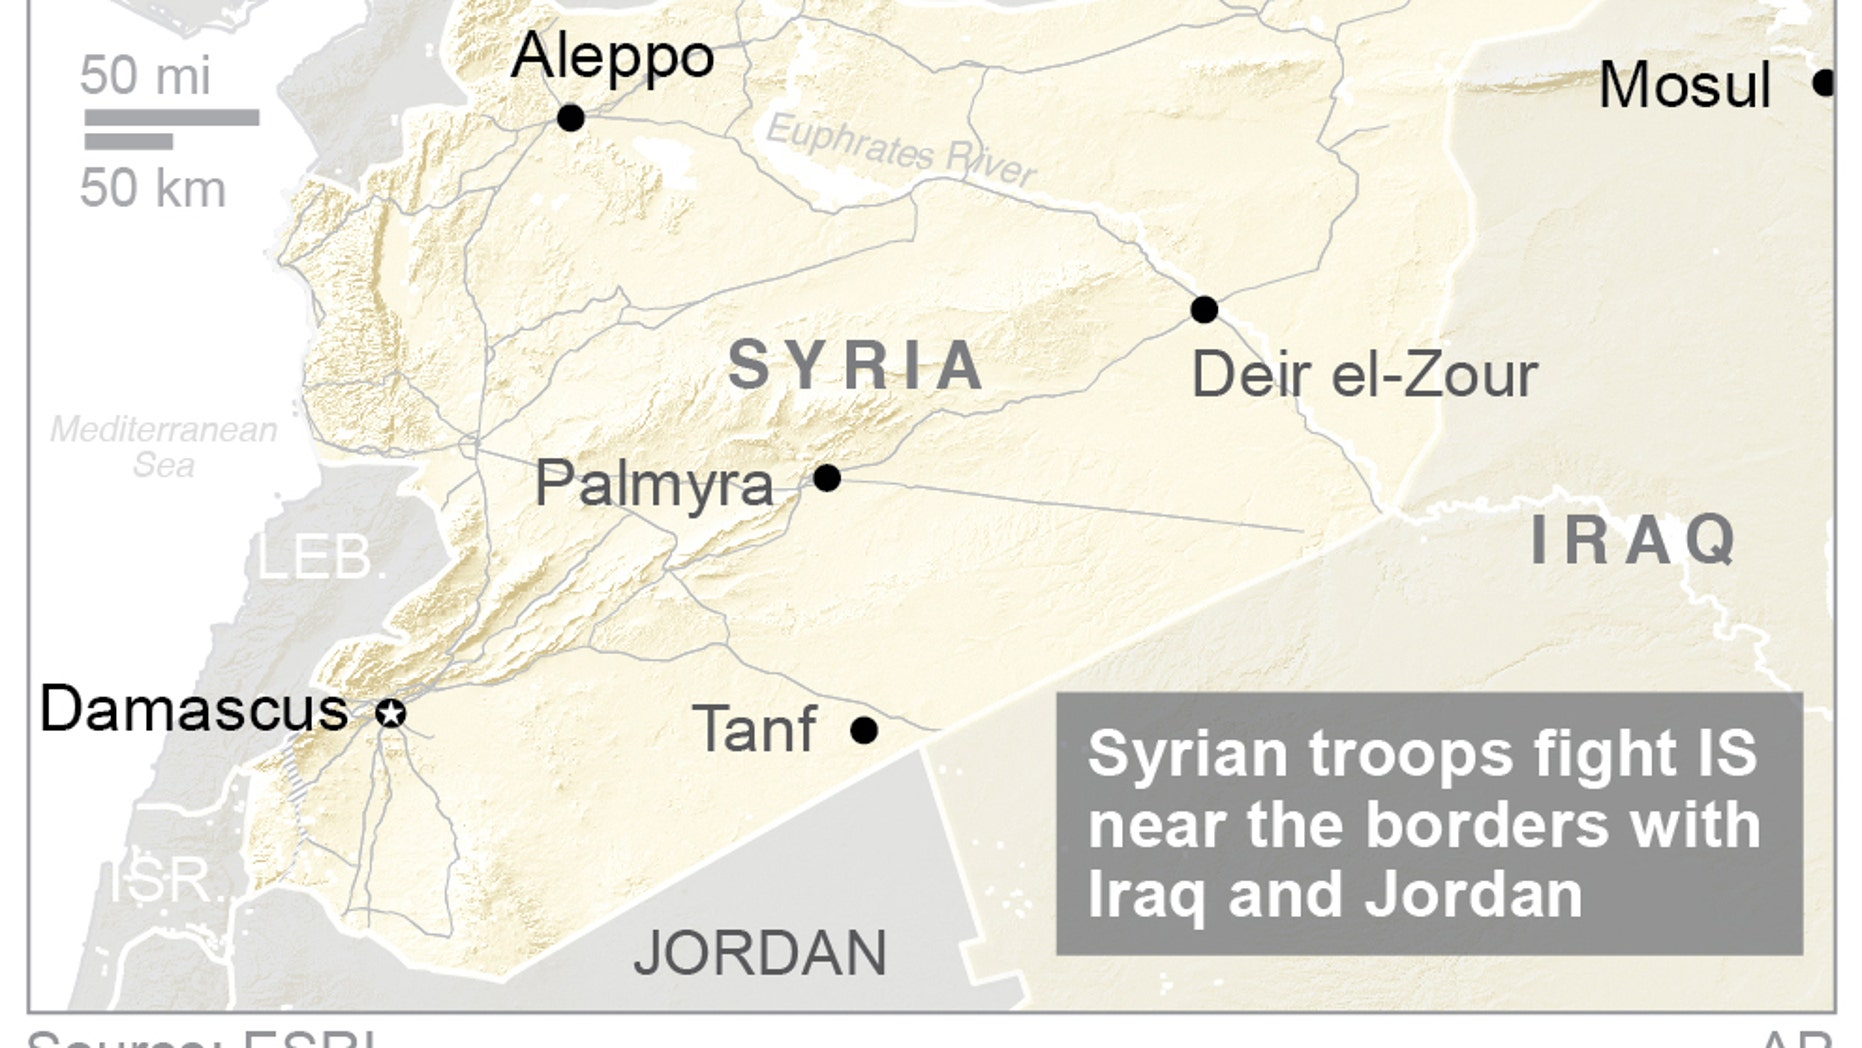 Syrian troops battling in a remote desert area near the borders.